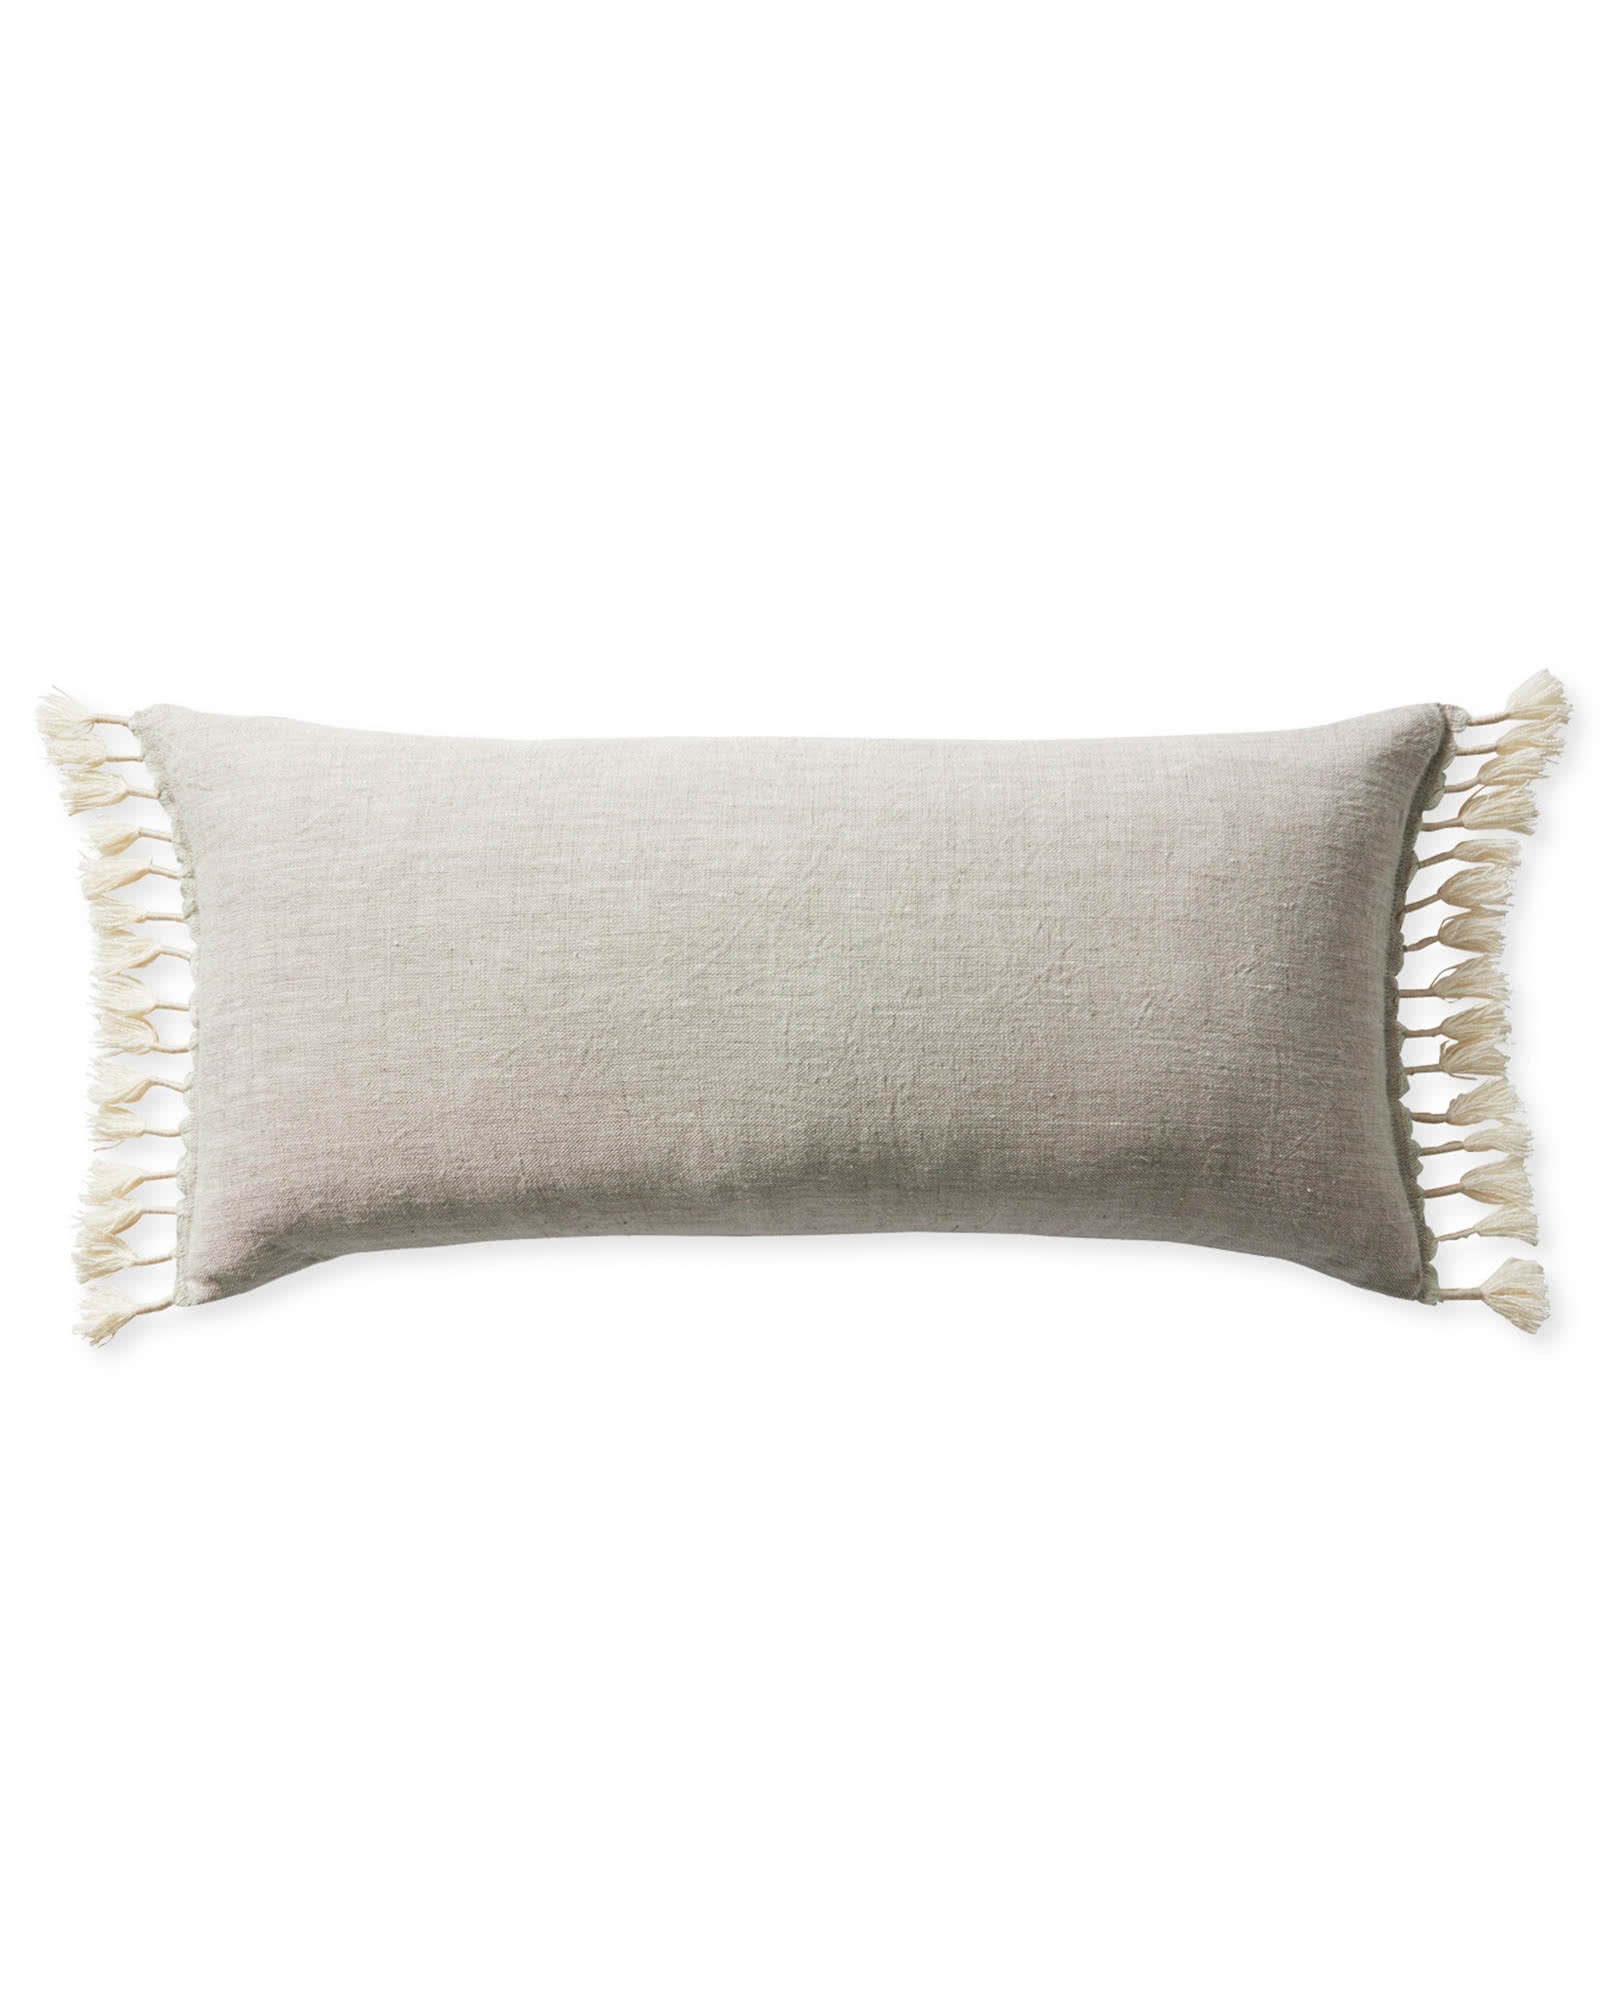 Topanga Pillow Cover, Ivory